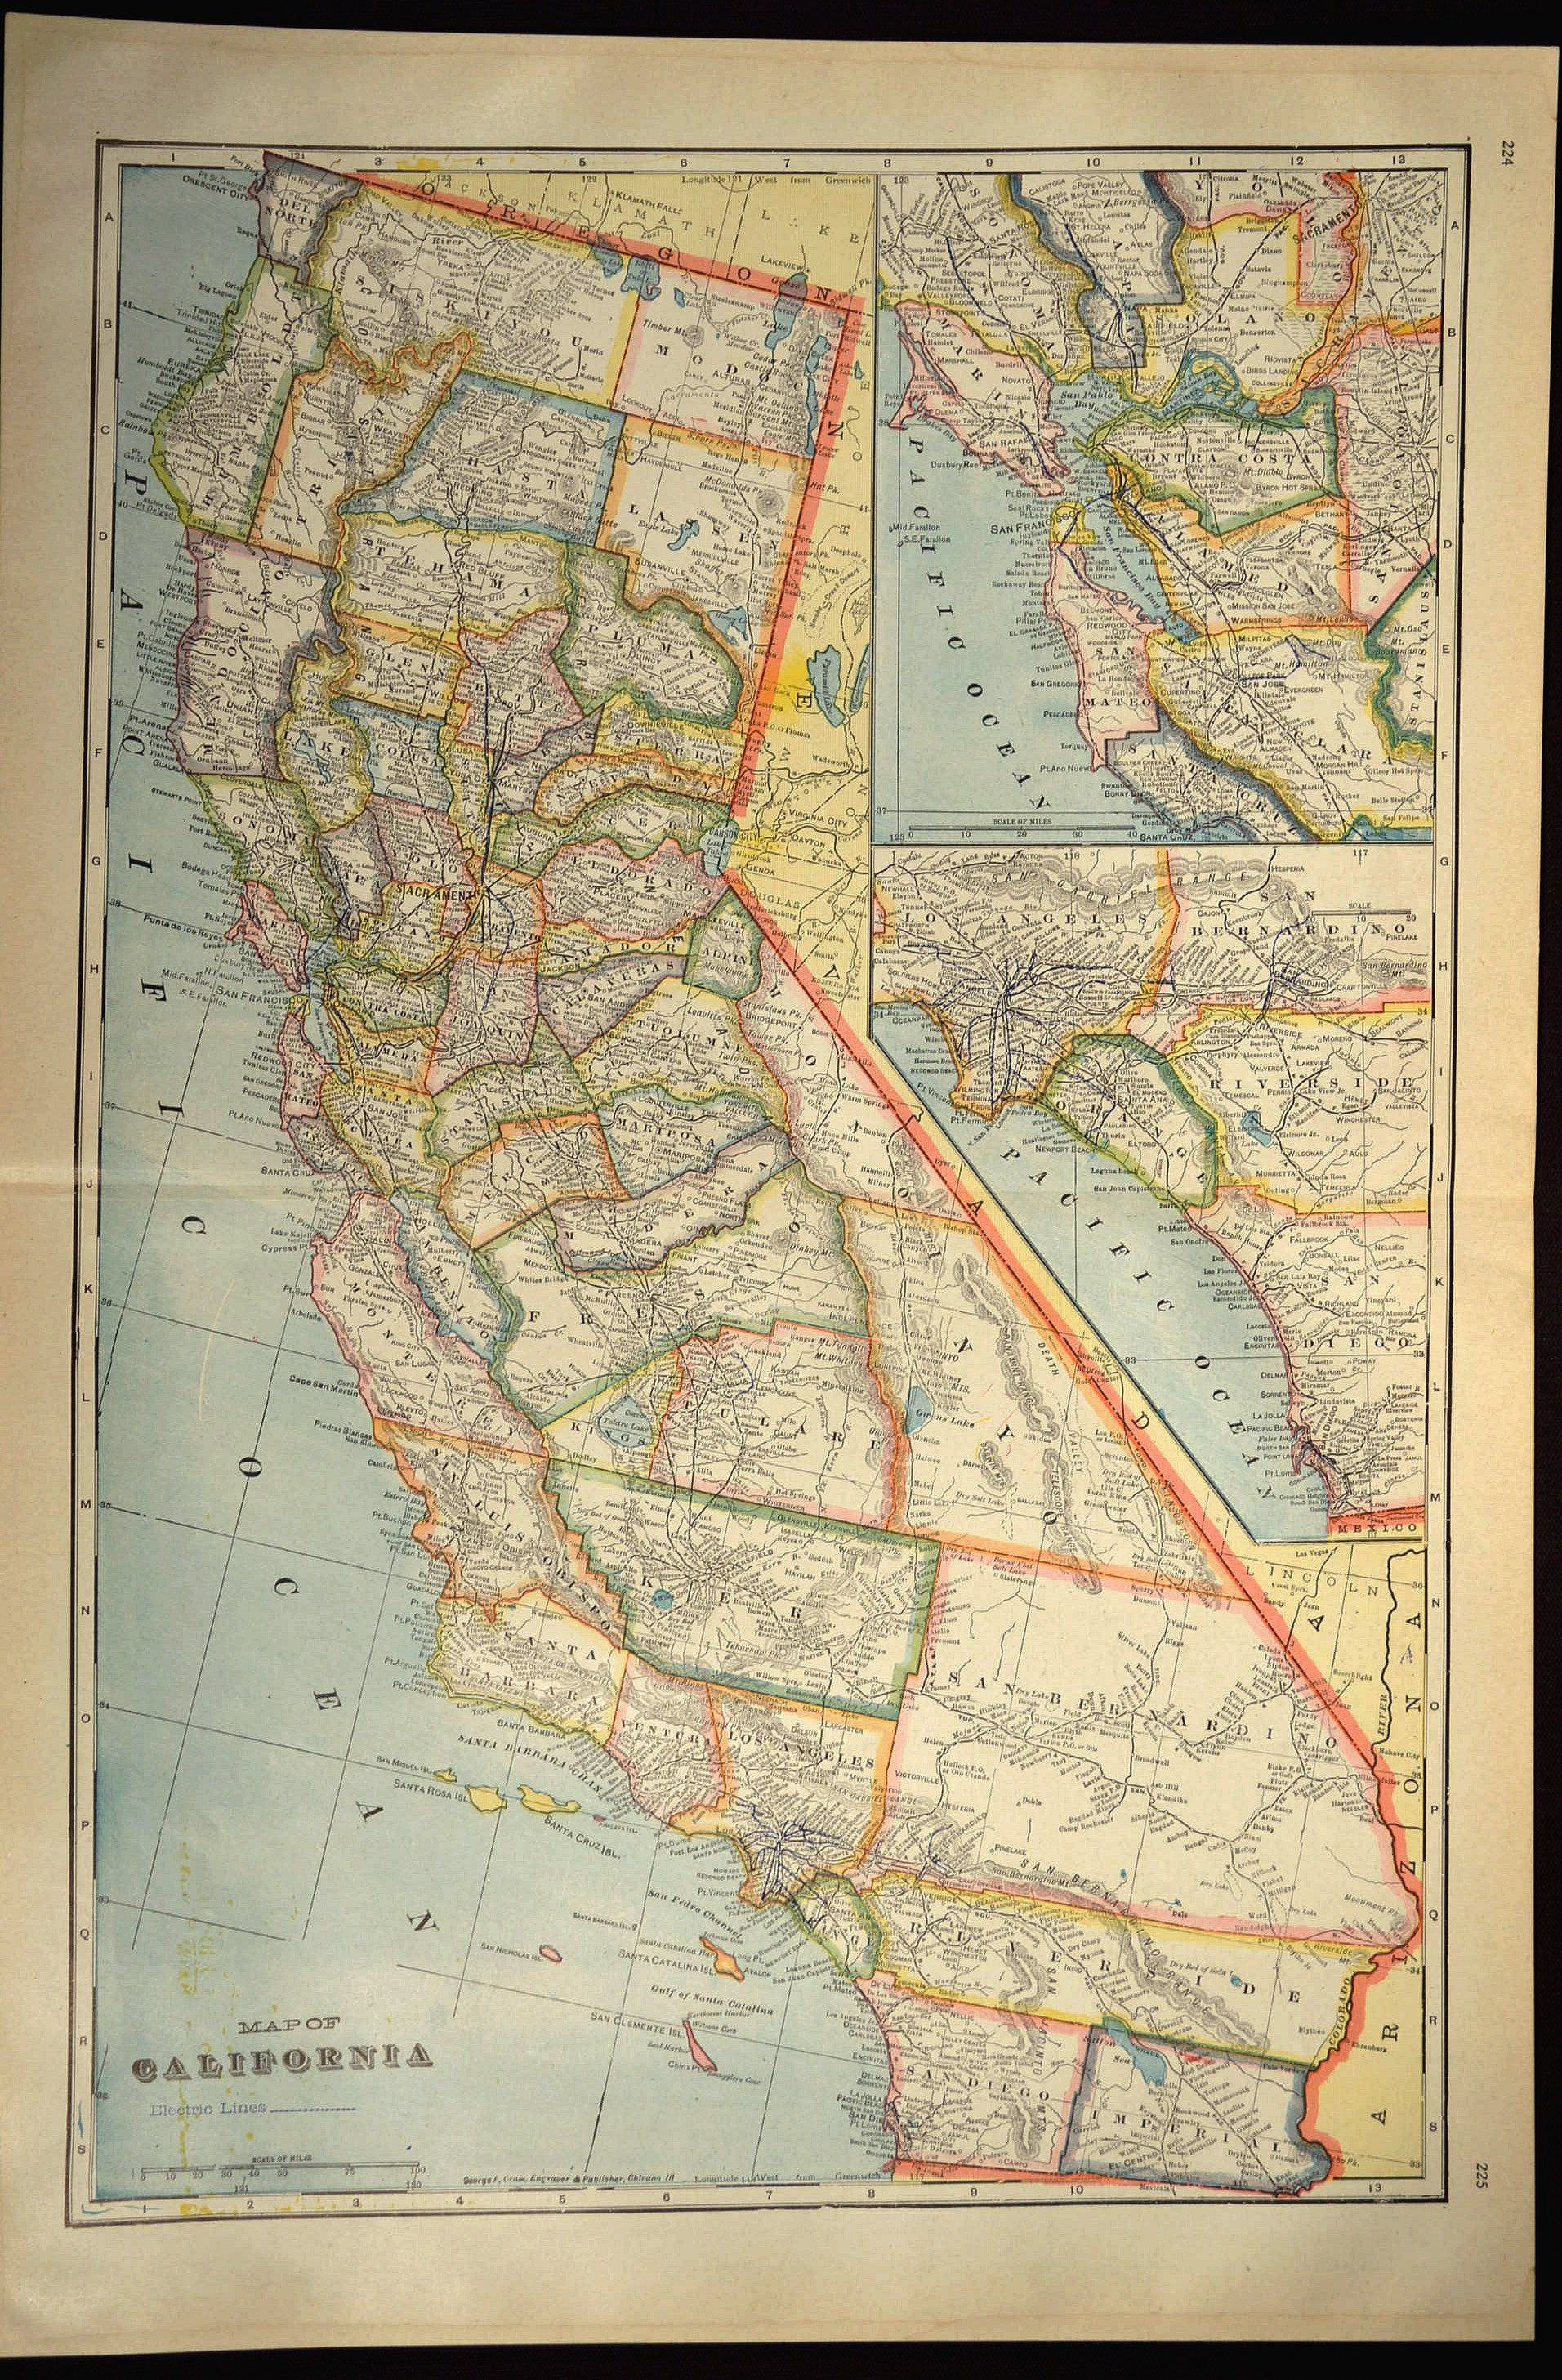 California Map of California Wall Art Decor LARGE Antique Colorful on